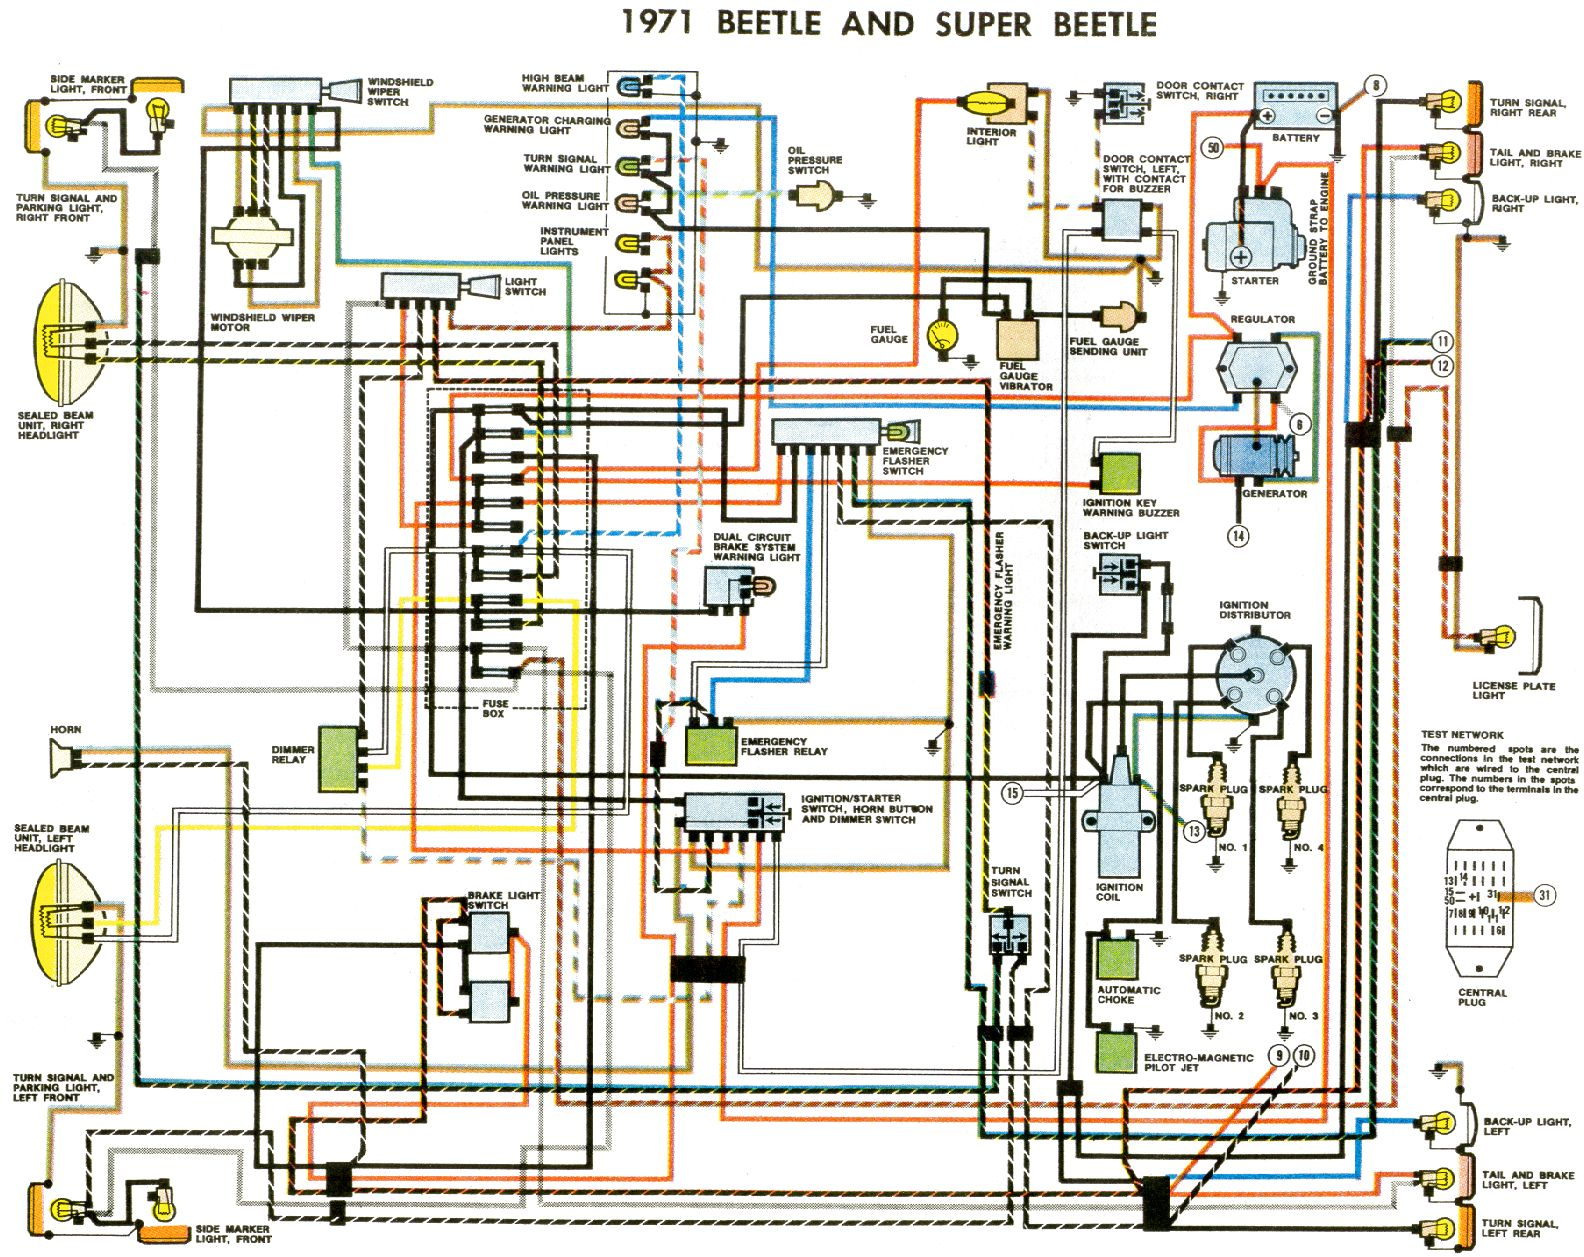 Electrical Wiring Diagram Of Automotive : Volkswagen typ